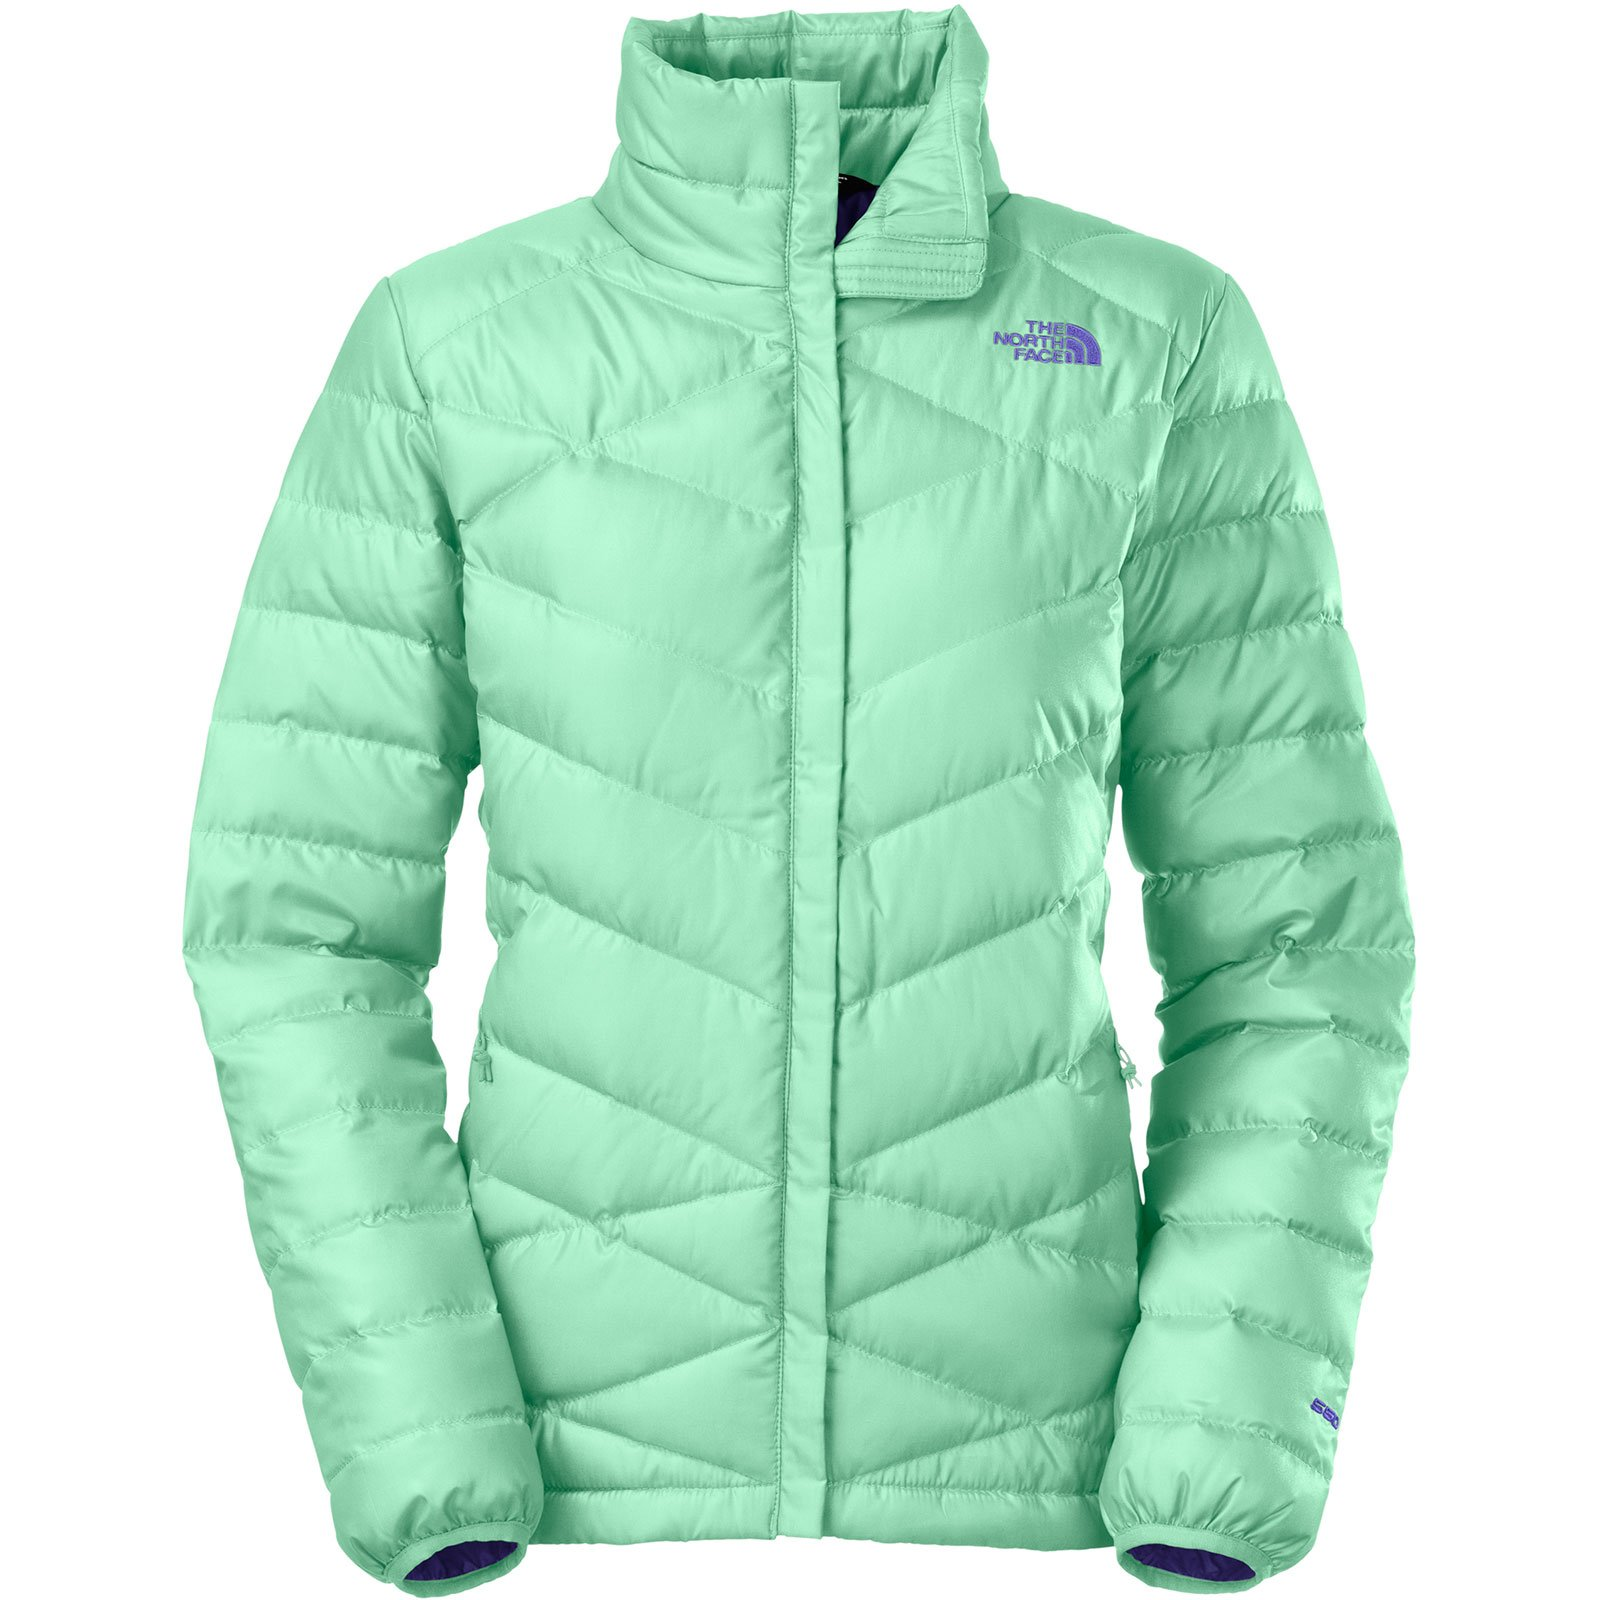 The North Face Aconcagua Jacket Womens Surf Green M